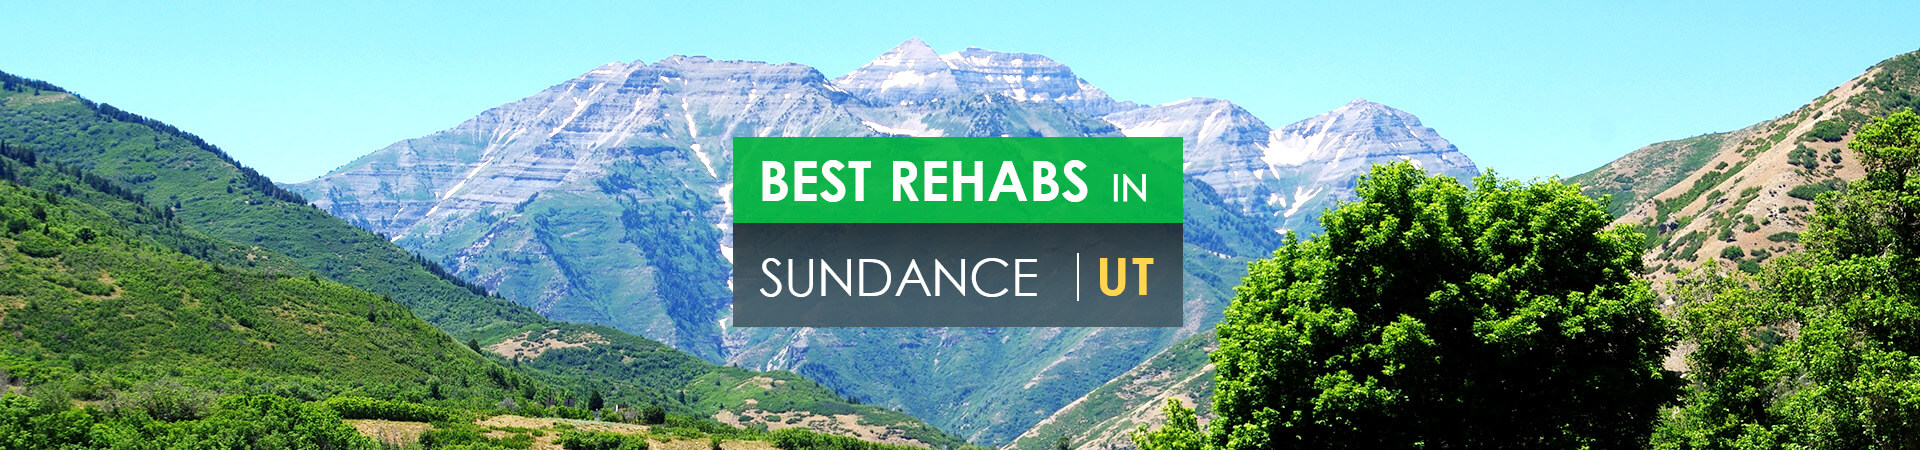 Best rehabs in Sundance, UT